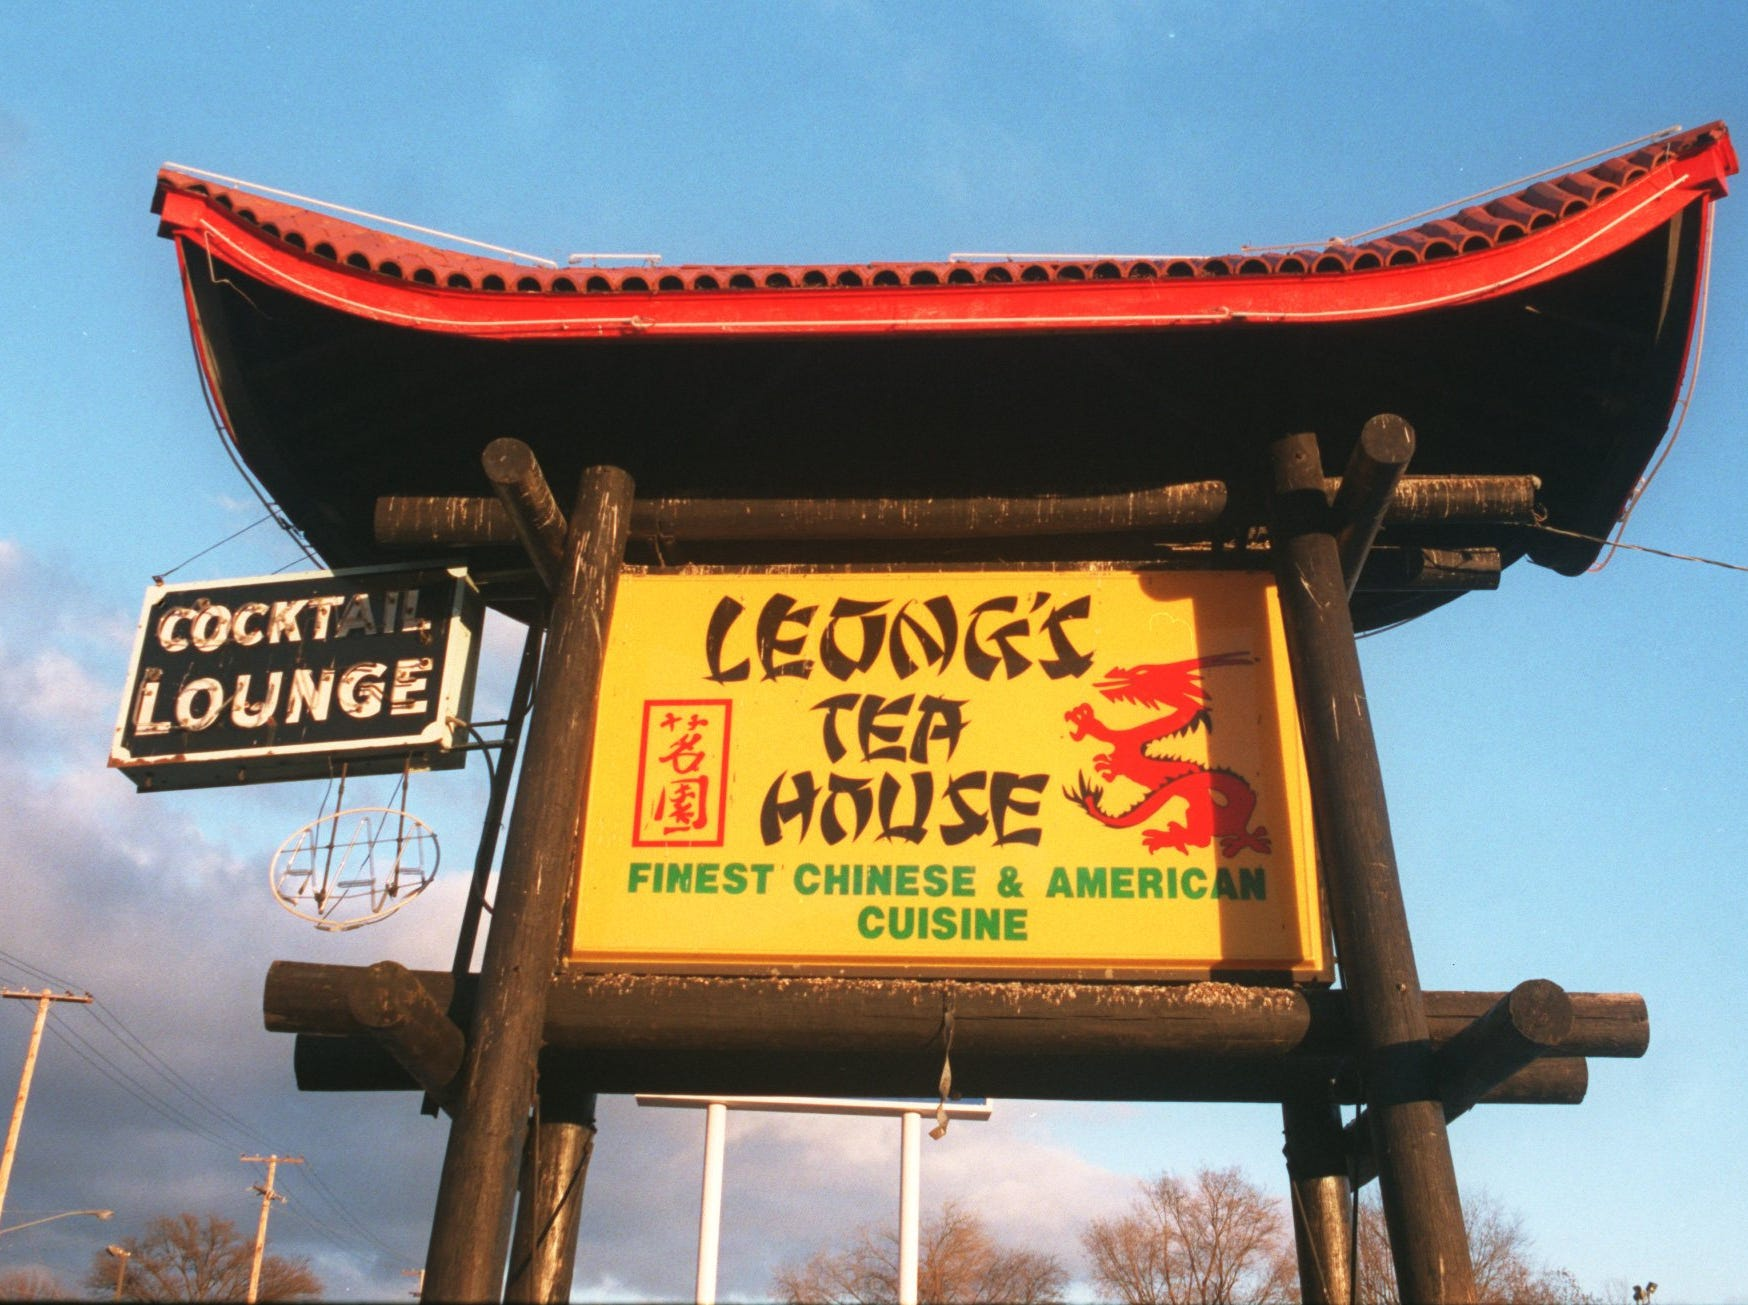 While the original Leong's Tea House is long gone, it lives on in spirit at Leong's Asian Diner. The original Leong's opened in 1963 on West Sunshine Street and closed in 1997.